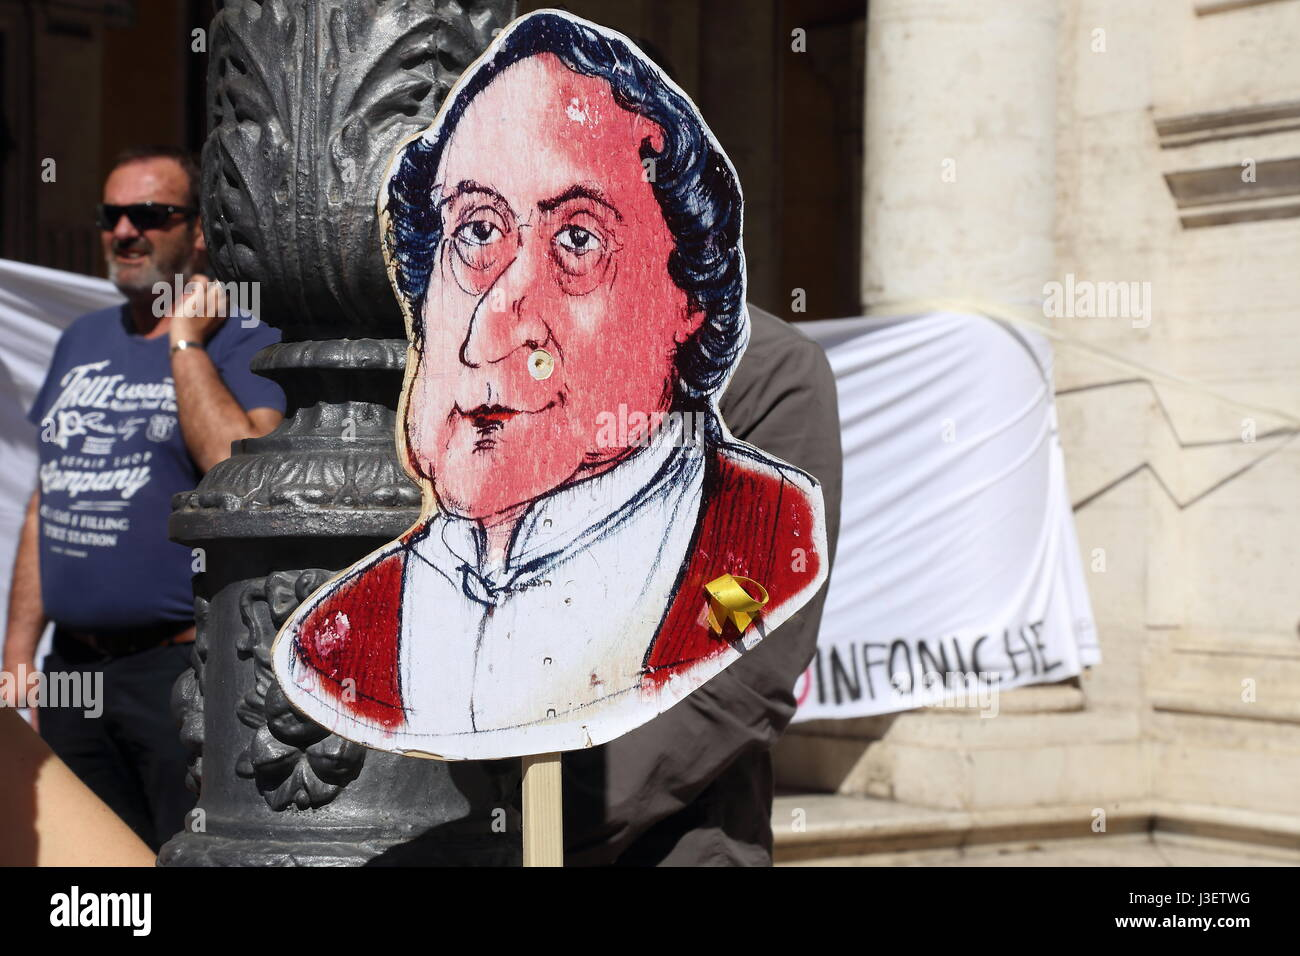 Demonstration at the Piazza del Campidoglio in Rome organized by the workers of the national committee of symphonic - Stock Image